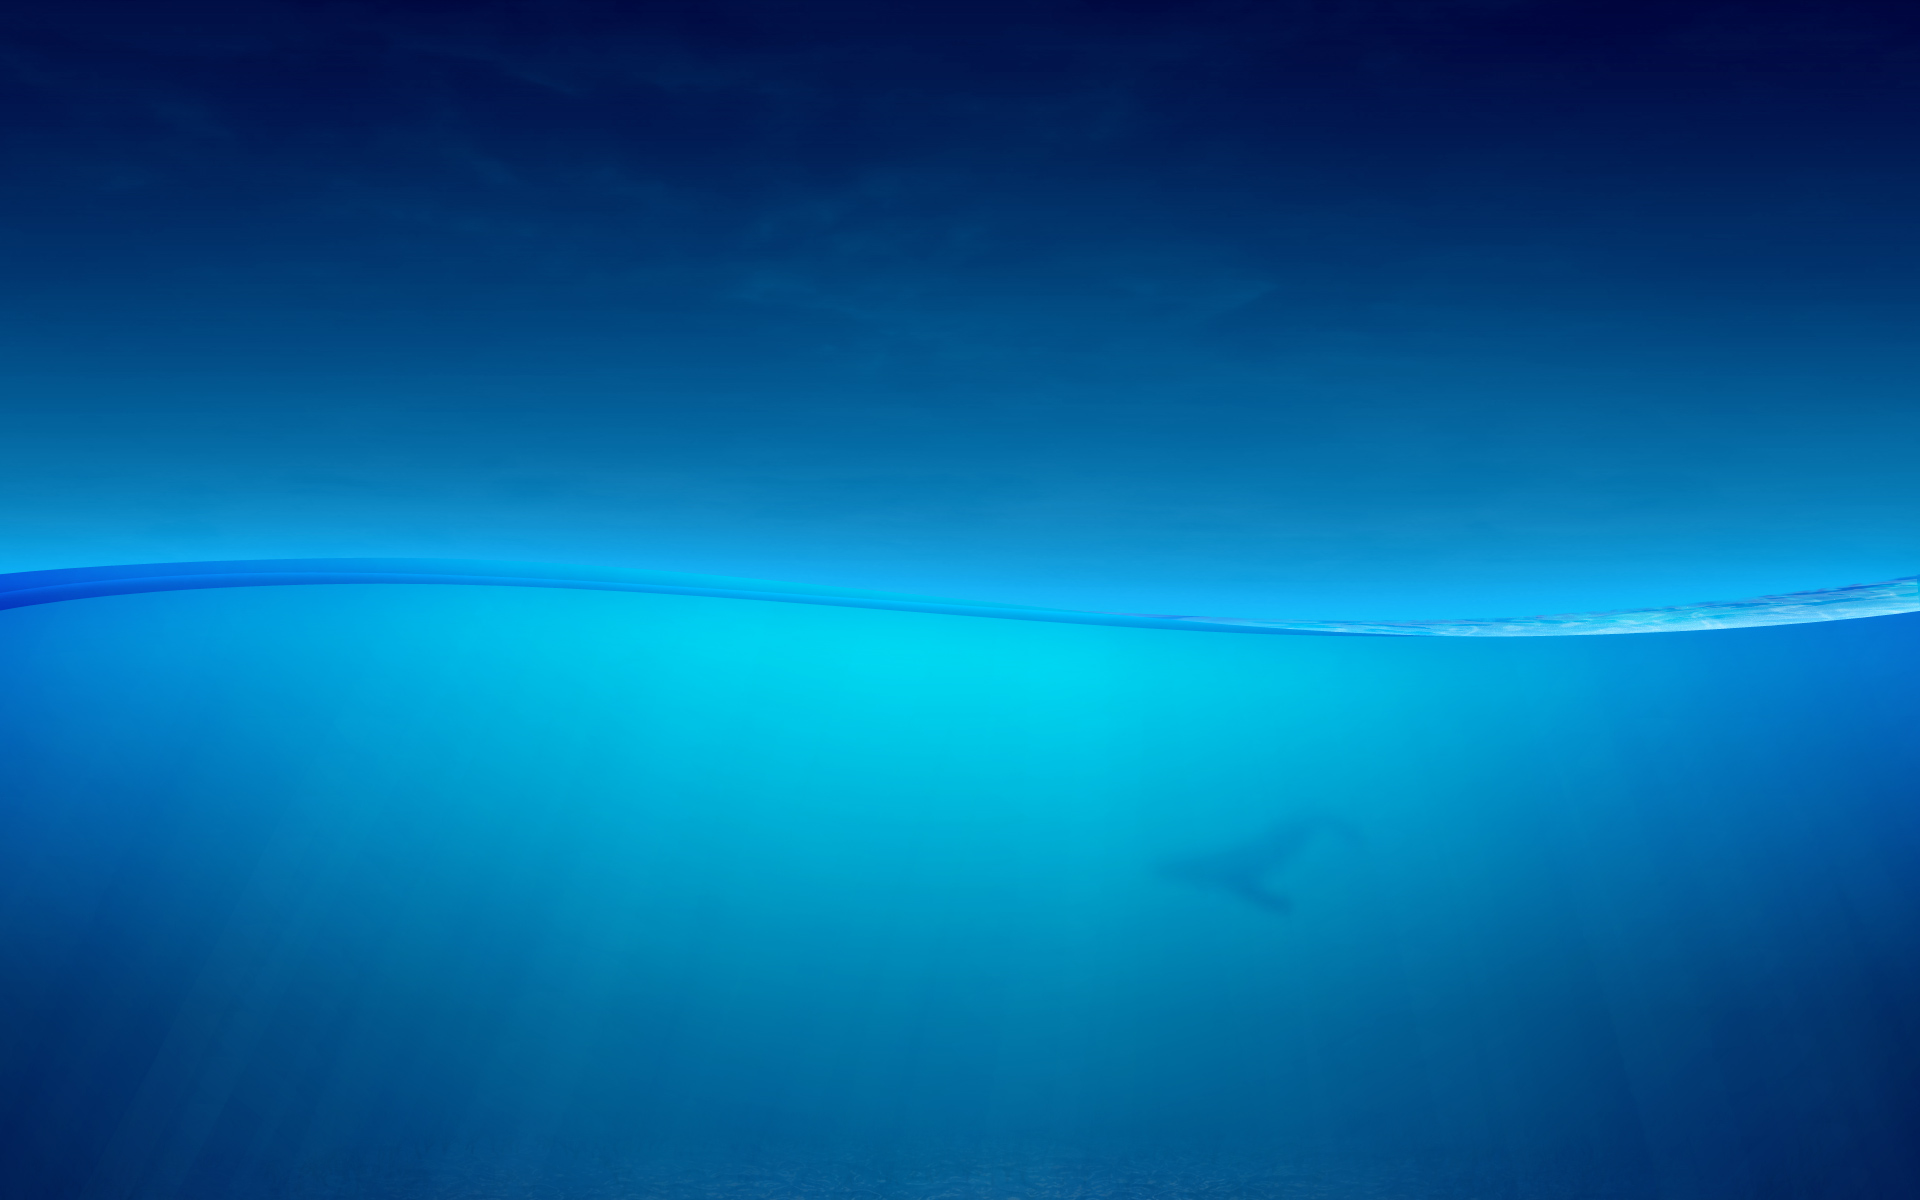 Ocean Wallpapers HD Wallpapers 1920x1200